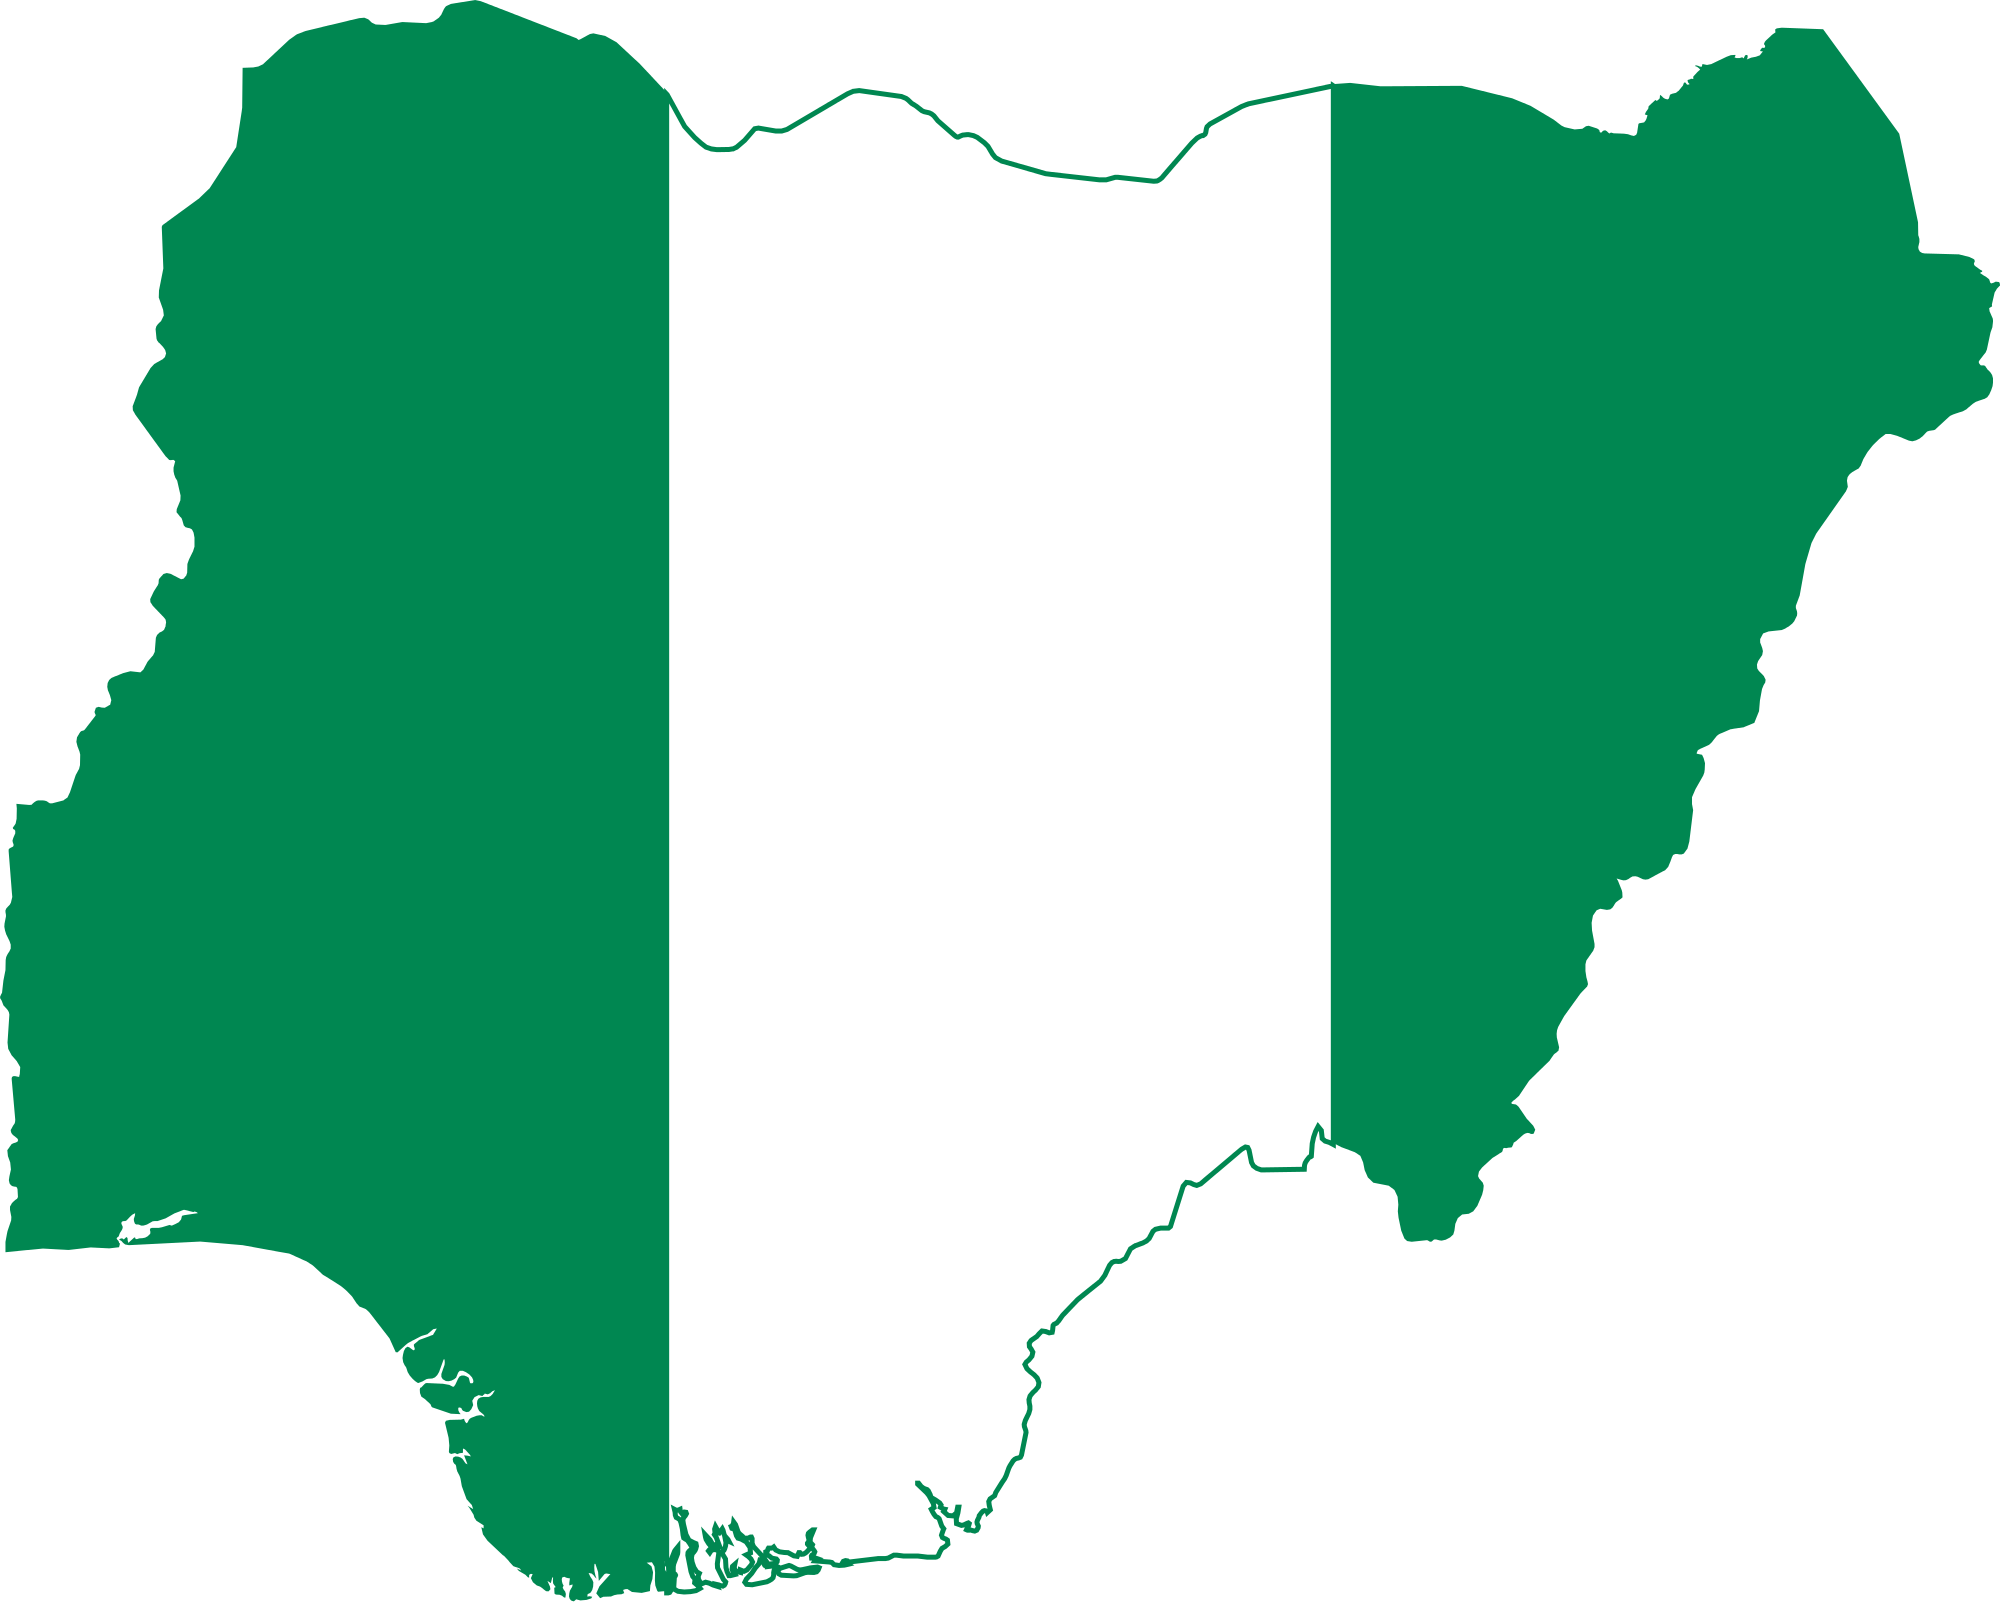 Nigeria news : Nigeria enters worst recession in decades